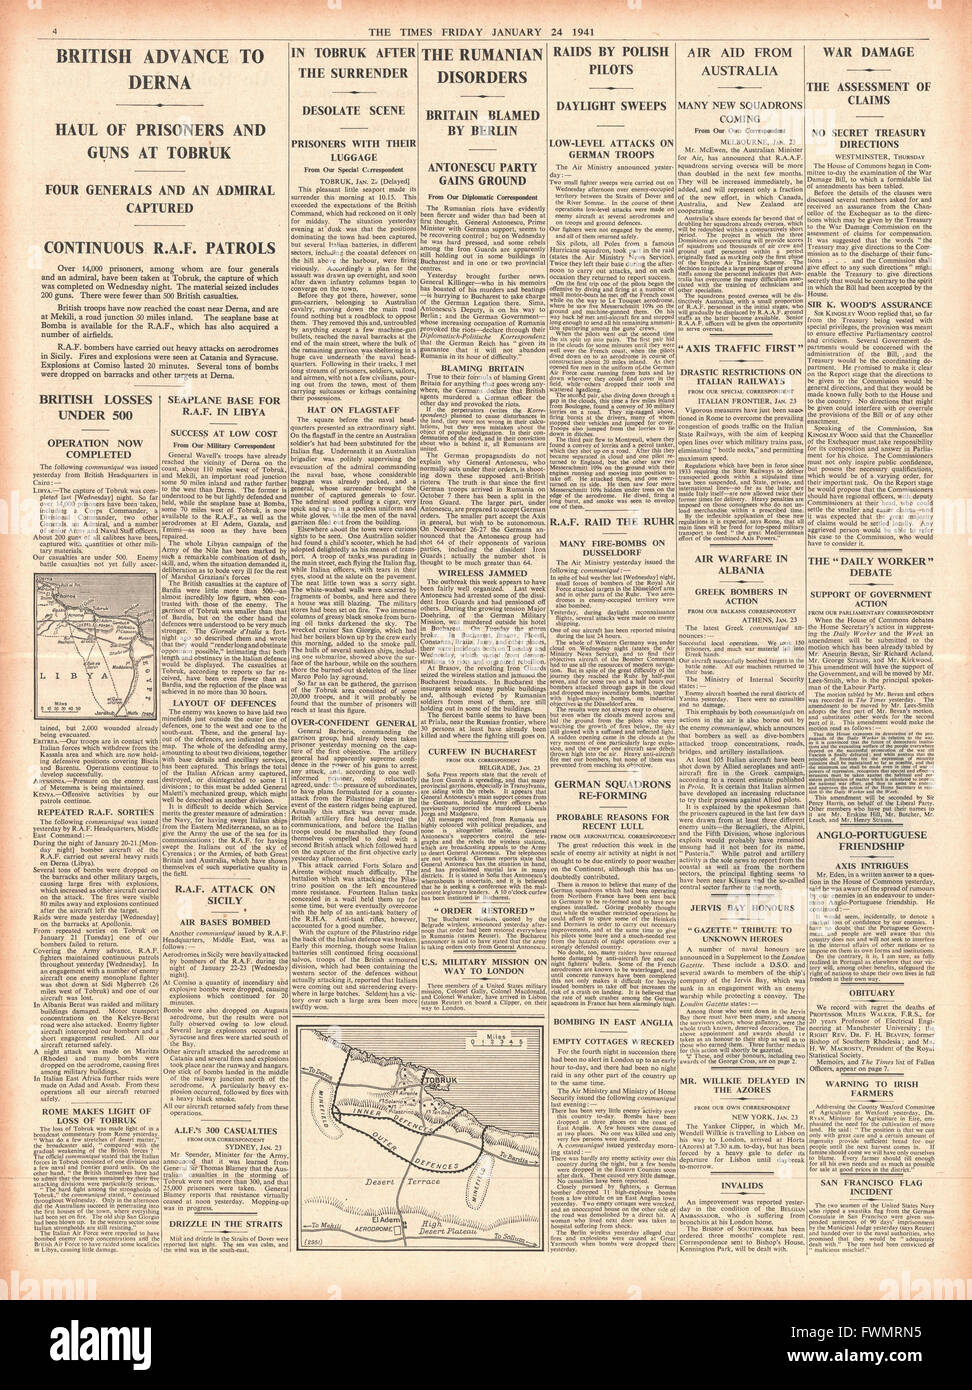 1941 page 4 The Times Allied Forces Capture Tobruk and advance to Derna - Stock Image